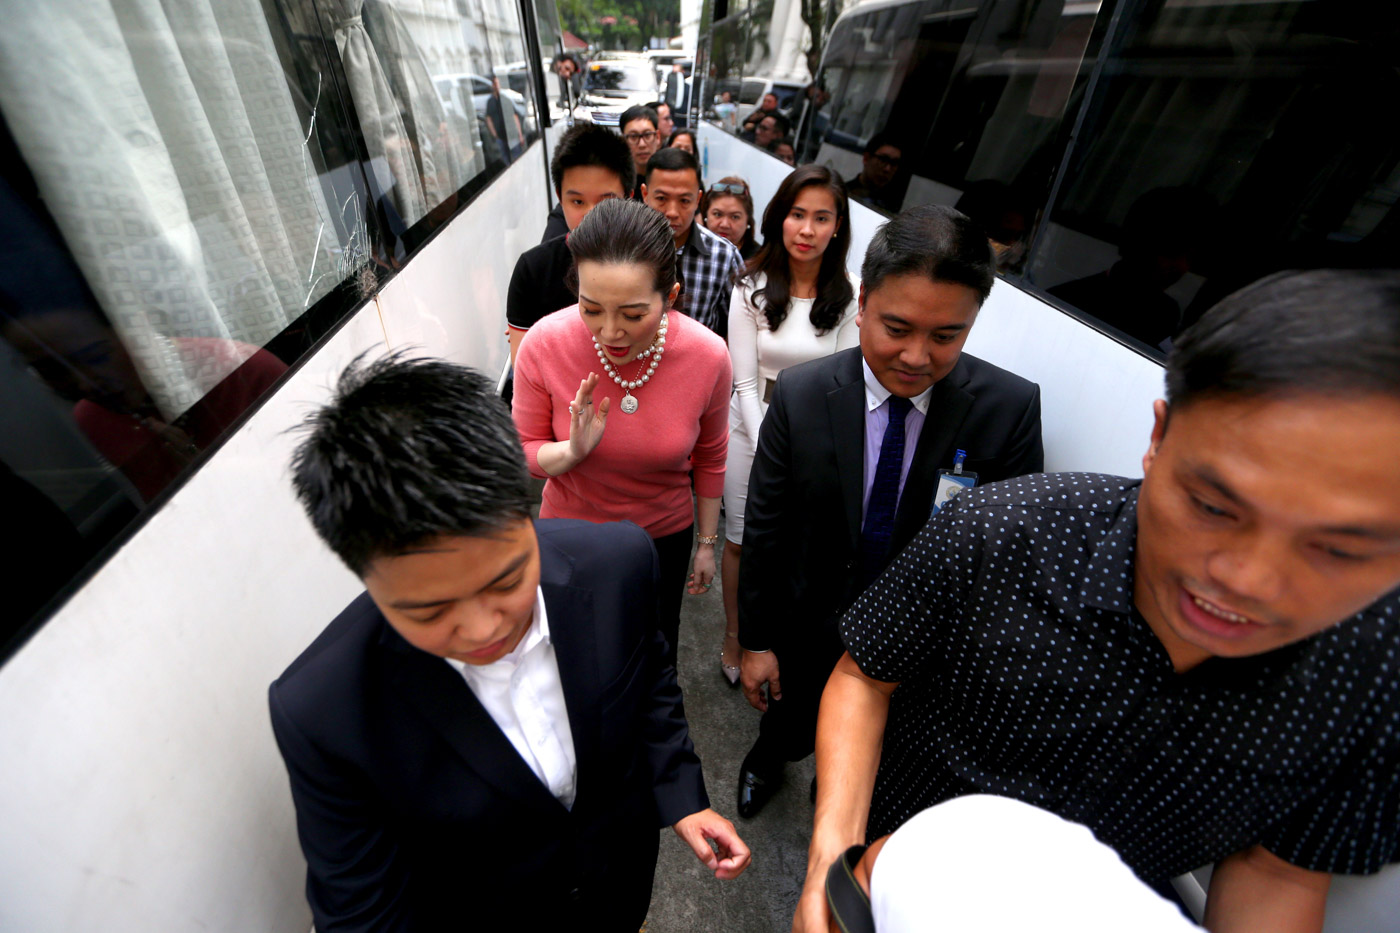 MORE CASES. Kris Aquino arrives at the Department of Justice to file cyber libel charges against lawyer Jesus Falcis on November 22, 2018. Photo by Inoue Jaena/Rappler